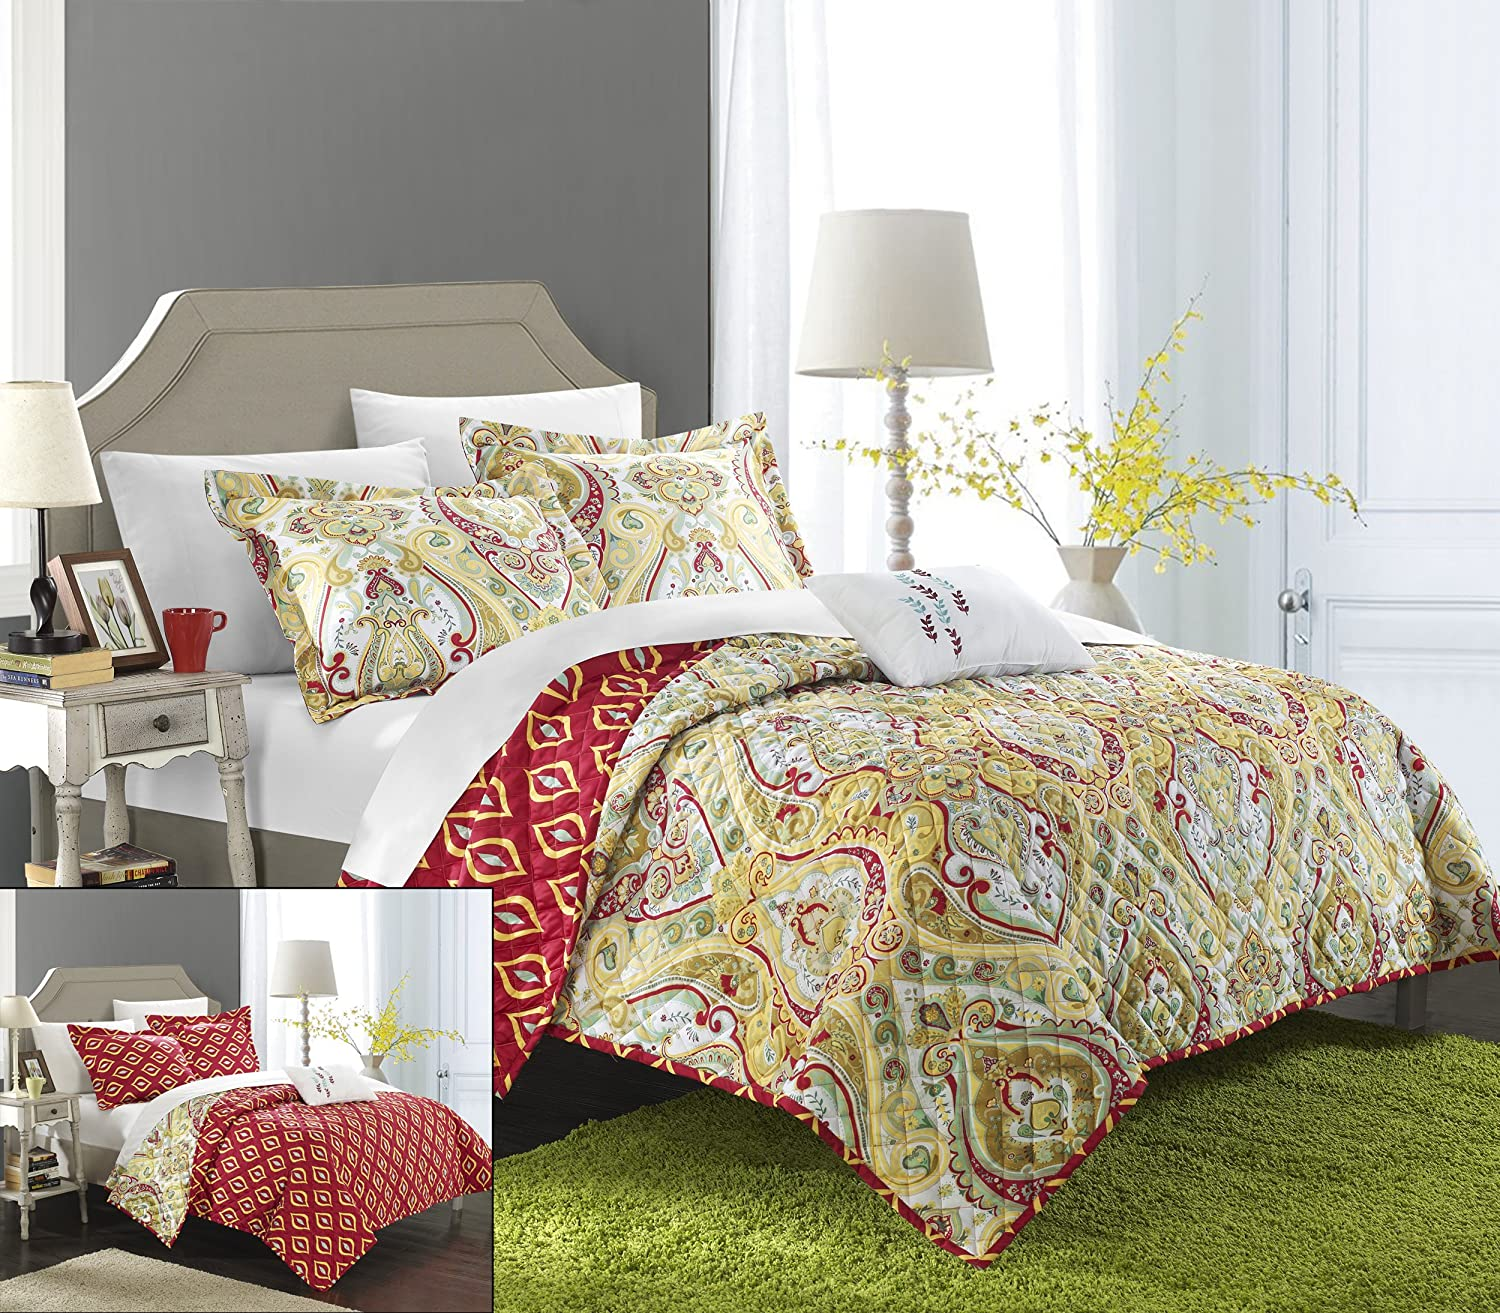 Chic Home 4 Piece Paisley Global Inspired Vedara Reversible Quilt, King, Brown QS3353-AN